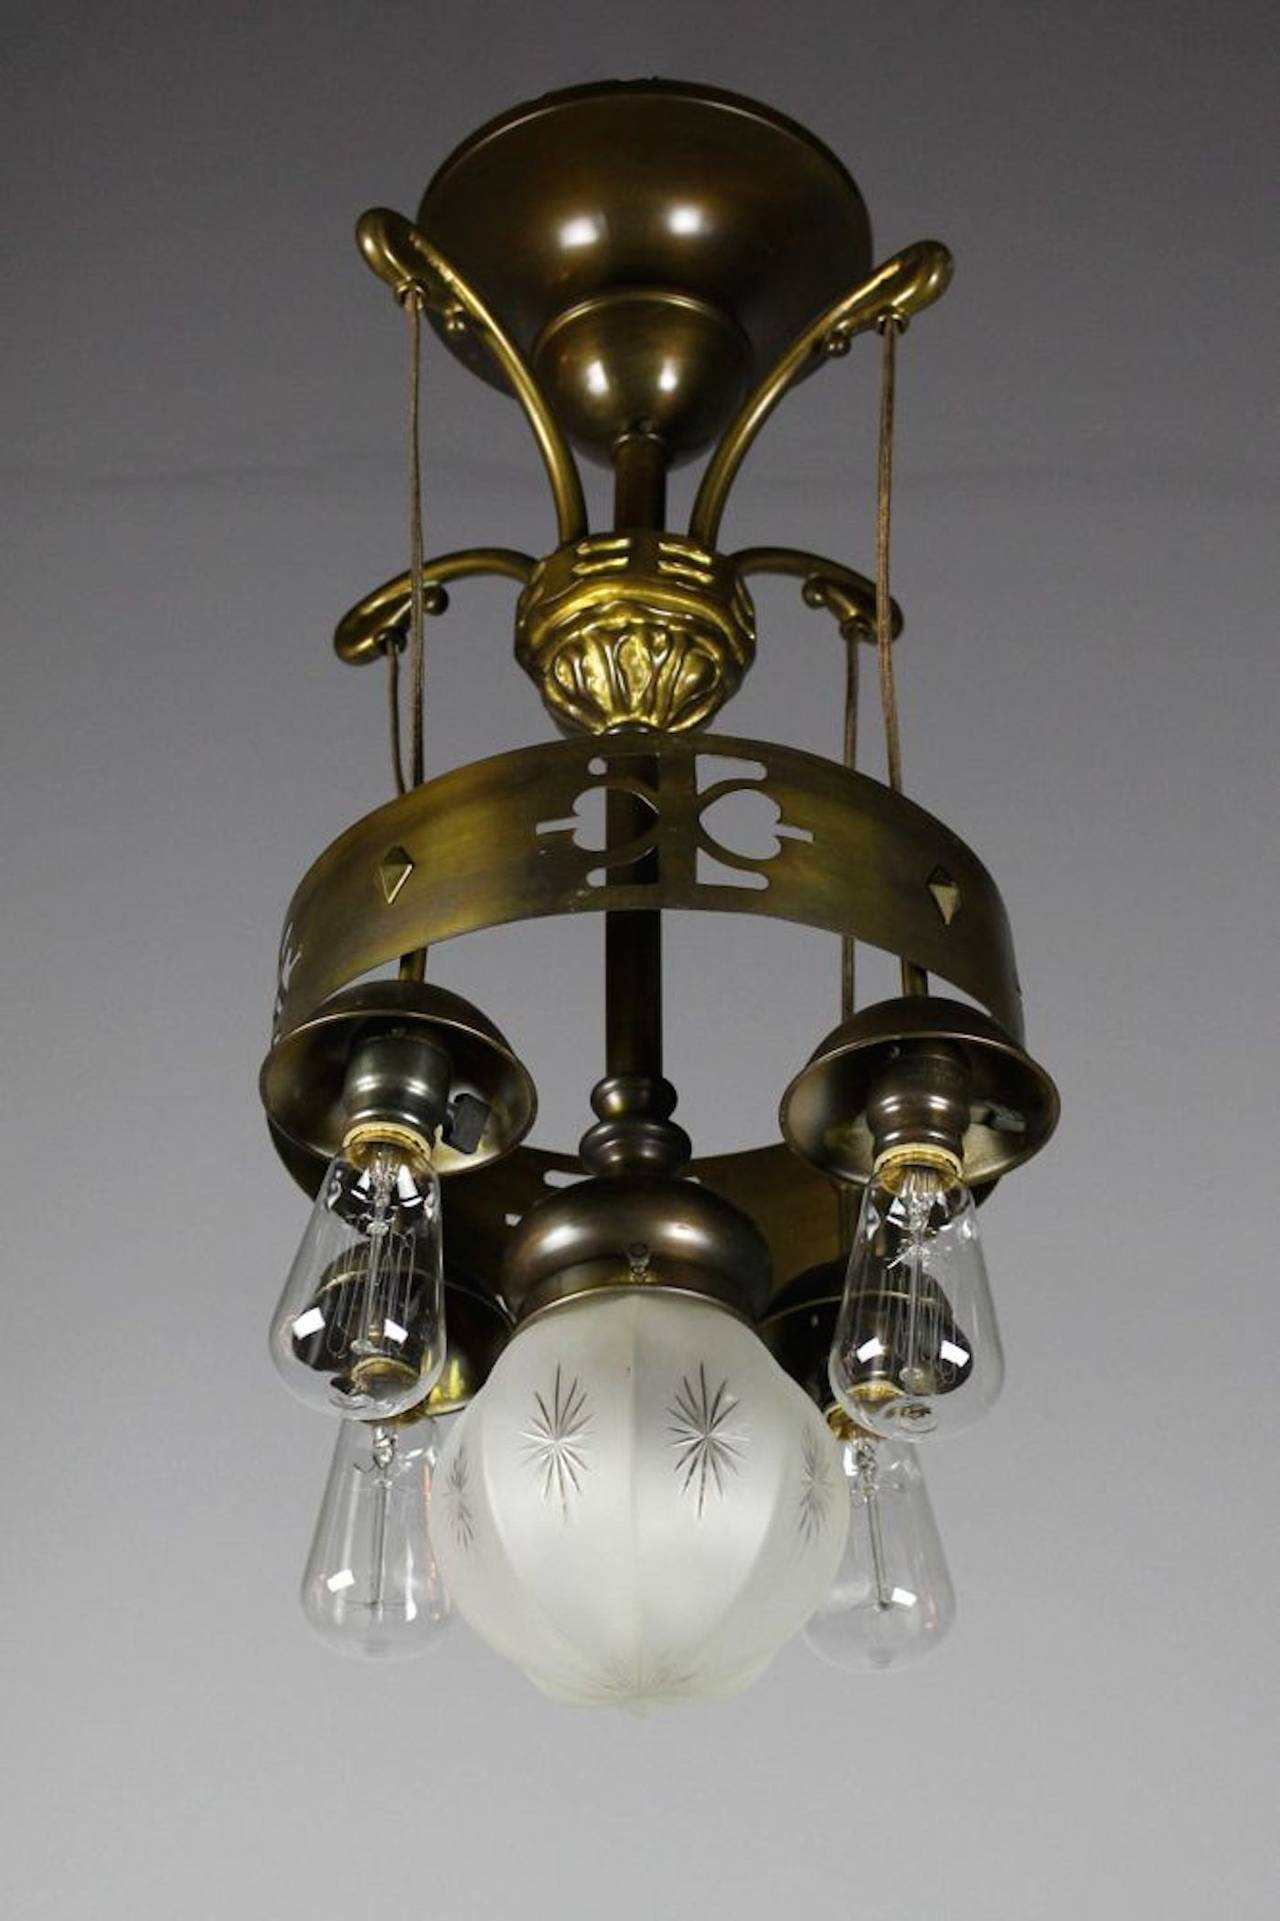 Rare Arts And Crafts Ringed Five Light Flush Mount Fixture